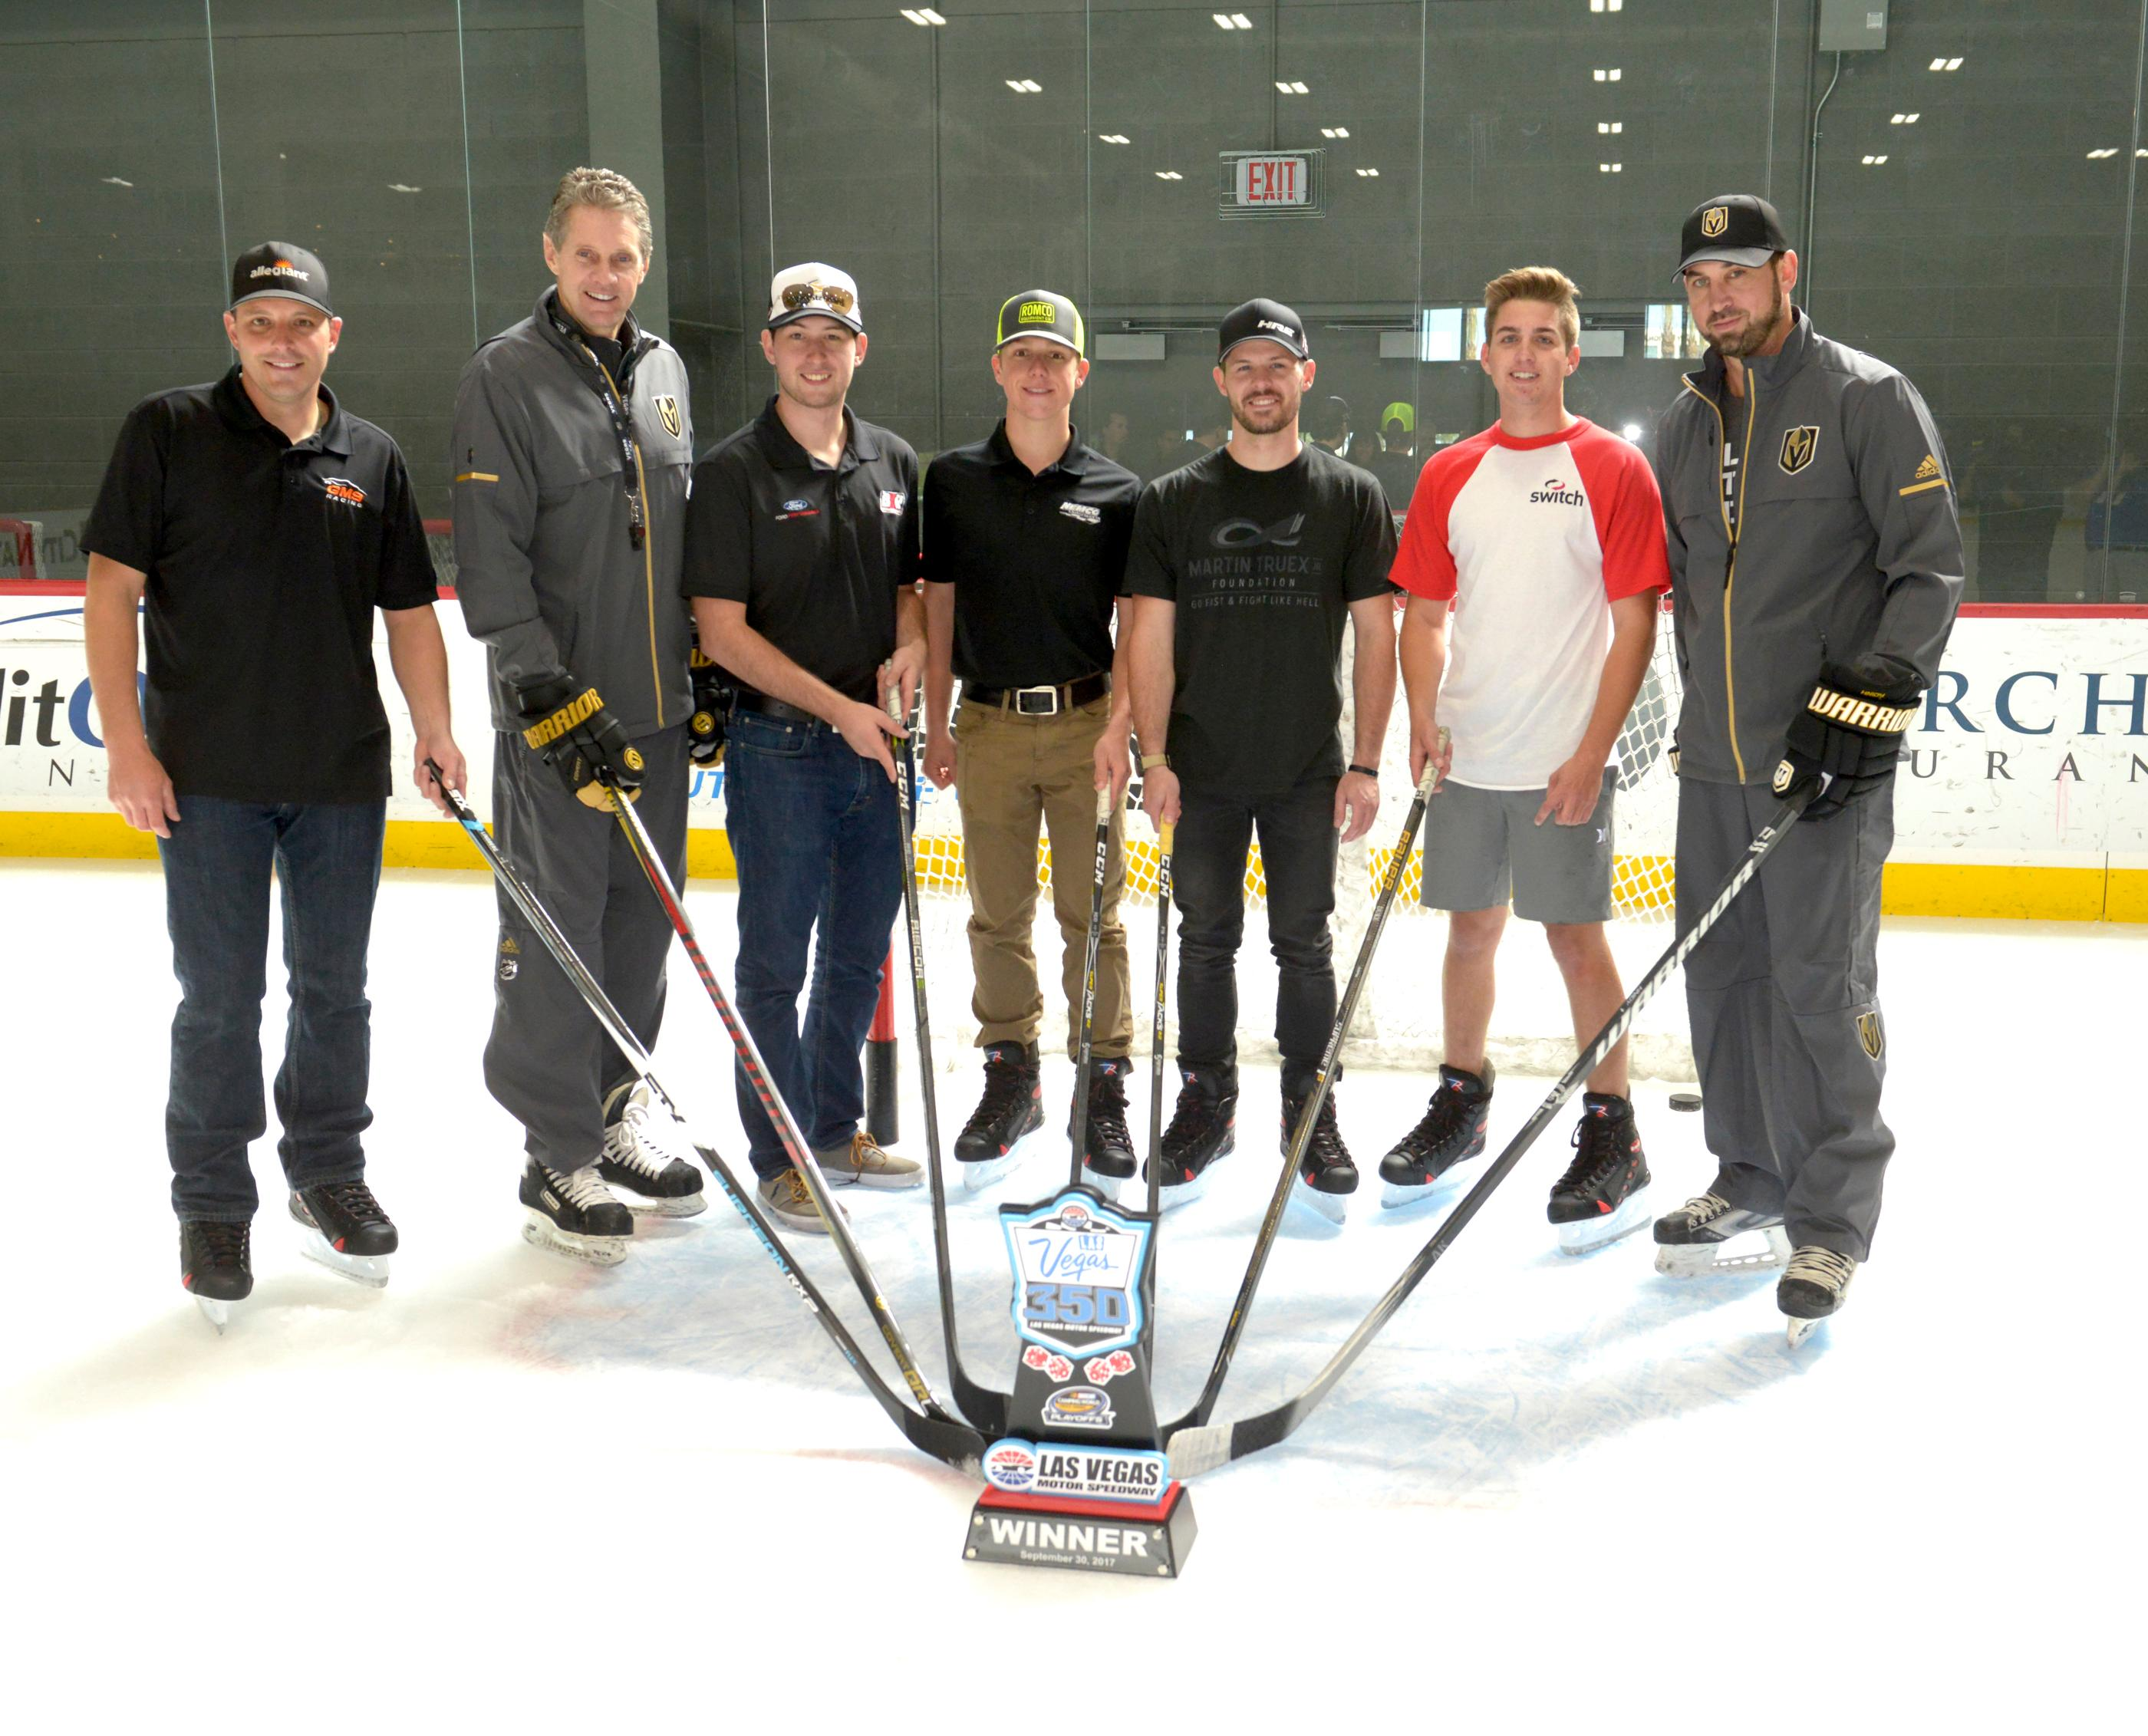 NASCAR Camping World Truck Series drivers, along with the NCWTS Trophy at a hockey skills clinic led by retired hockey professional and Las Vegas Golden Knights TV Analyst Shane Hnidy at City National Arena in Las Vegas. Pictured: (l-r) Johnny Sauter defending NCWTS, Murray Craven retired hockey professional, Chase Briscoe NCWTS driver, Hohn Hunter Nemechek NCWTS driver, Ryan Truex NCWTS driver, Noah Gragson NCWTS driver and Shane Hnidy retired hockey professional and Las Vegas Golden Knights TV Analyst. Friday, September 29, 2017. CREDIT: Glenn Pinkerton/Las Vegas News Bureau